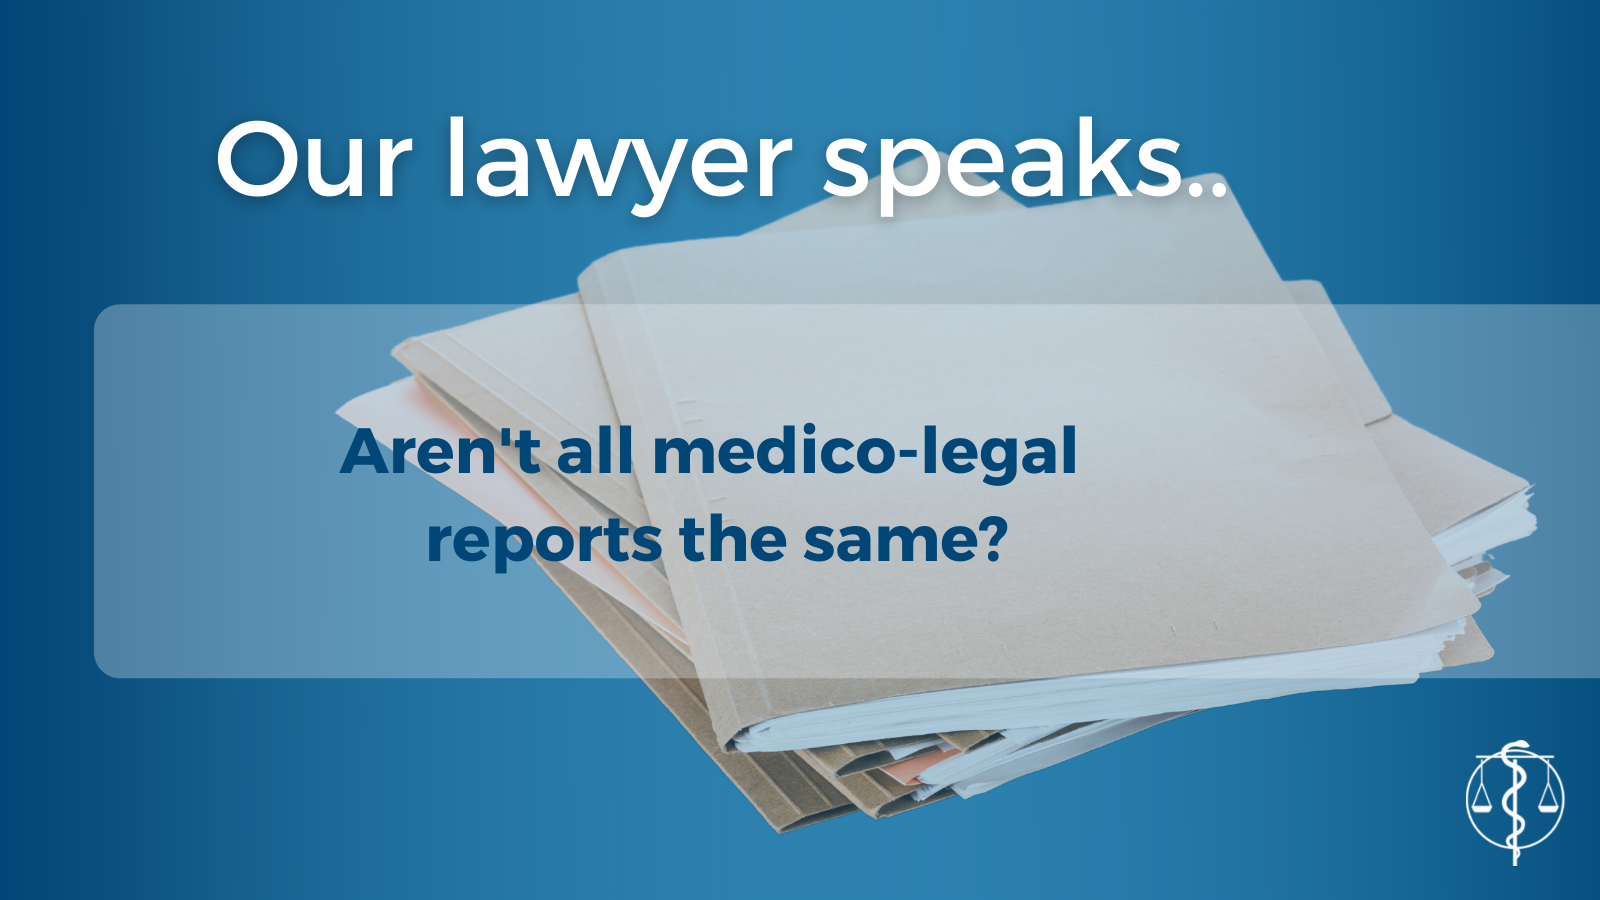 Aren't all medico-legal reports the same